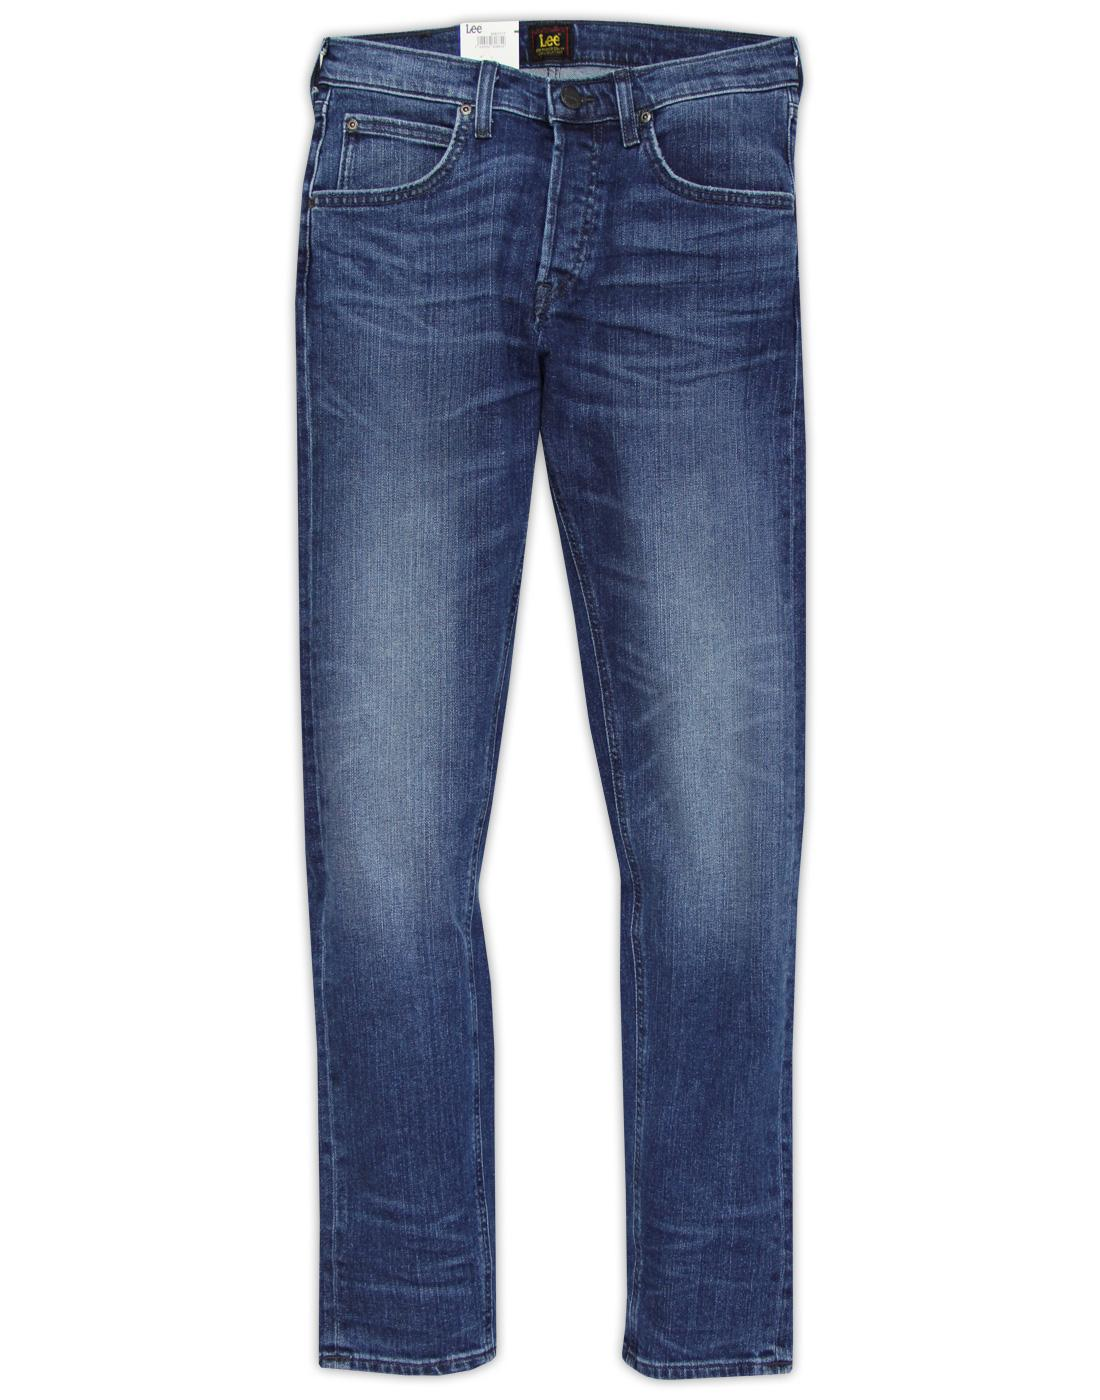 Daren LEE Regular Slim Banshee Worn Denim Jeans